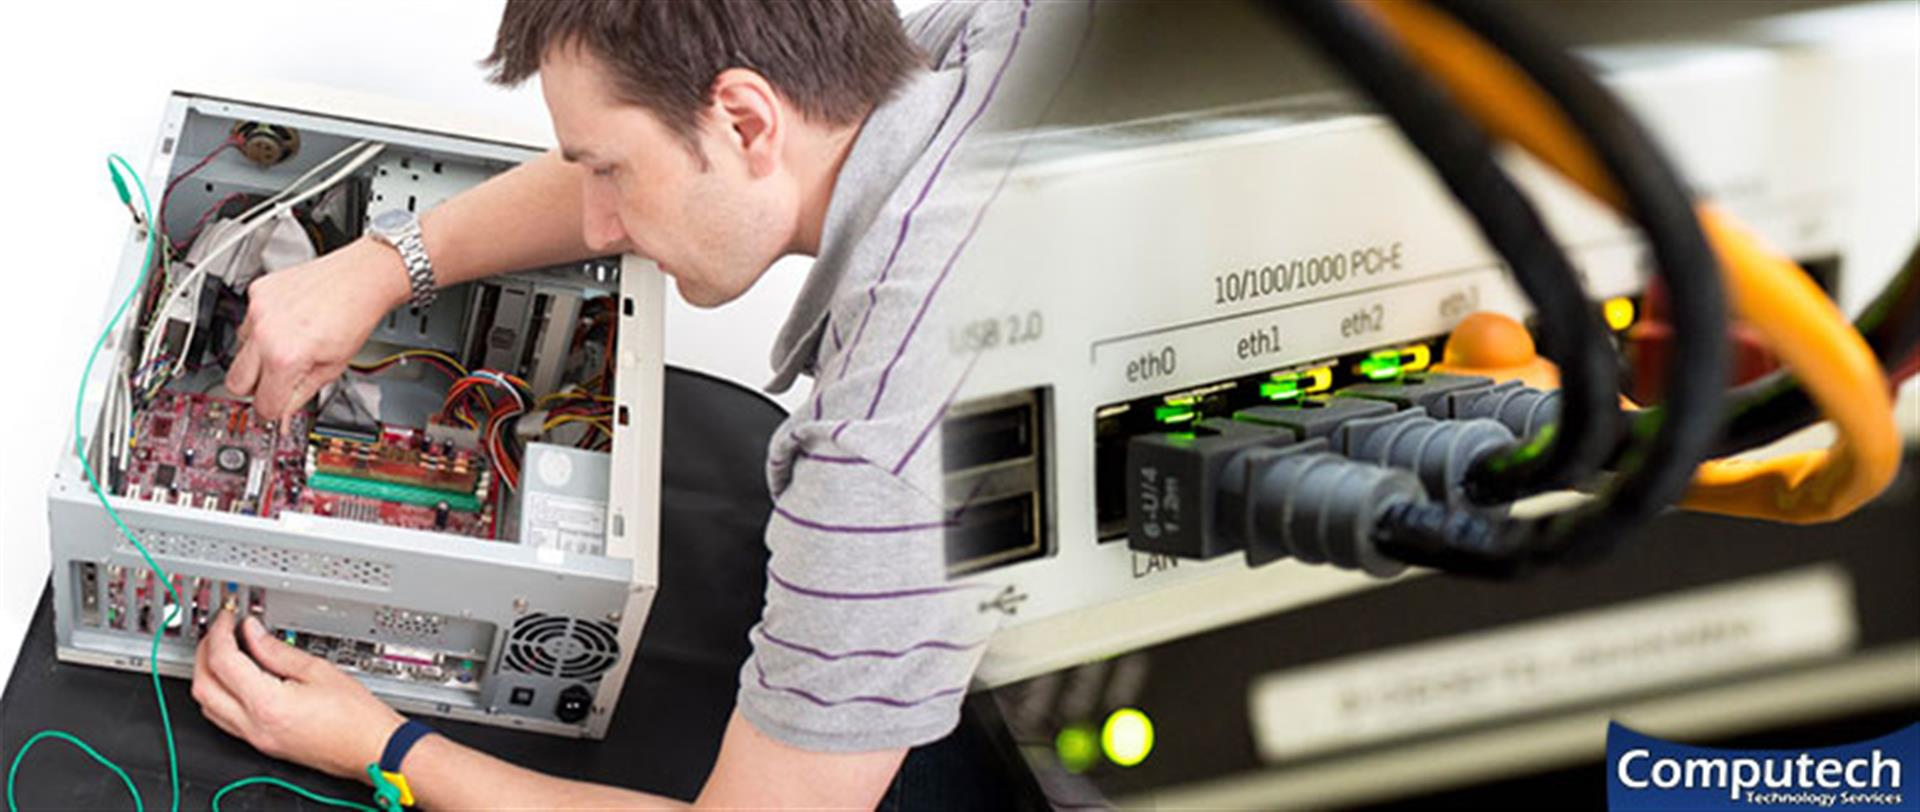 Abingdon Virginia Onsite PC & Printer Repairs, Networking, Voice & Data Cabling Services